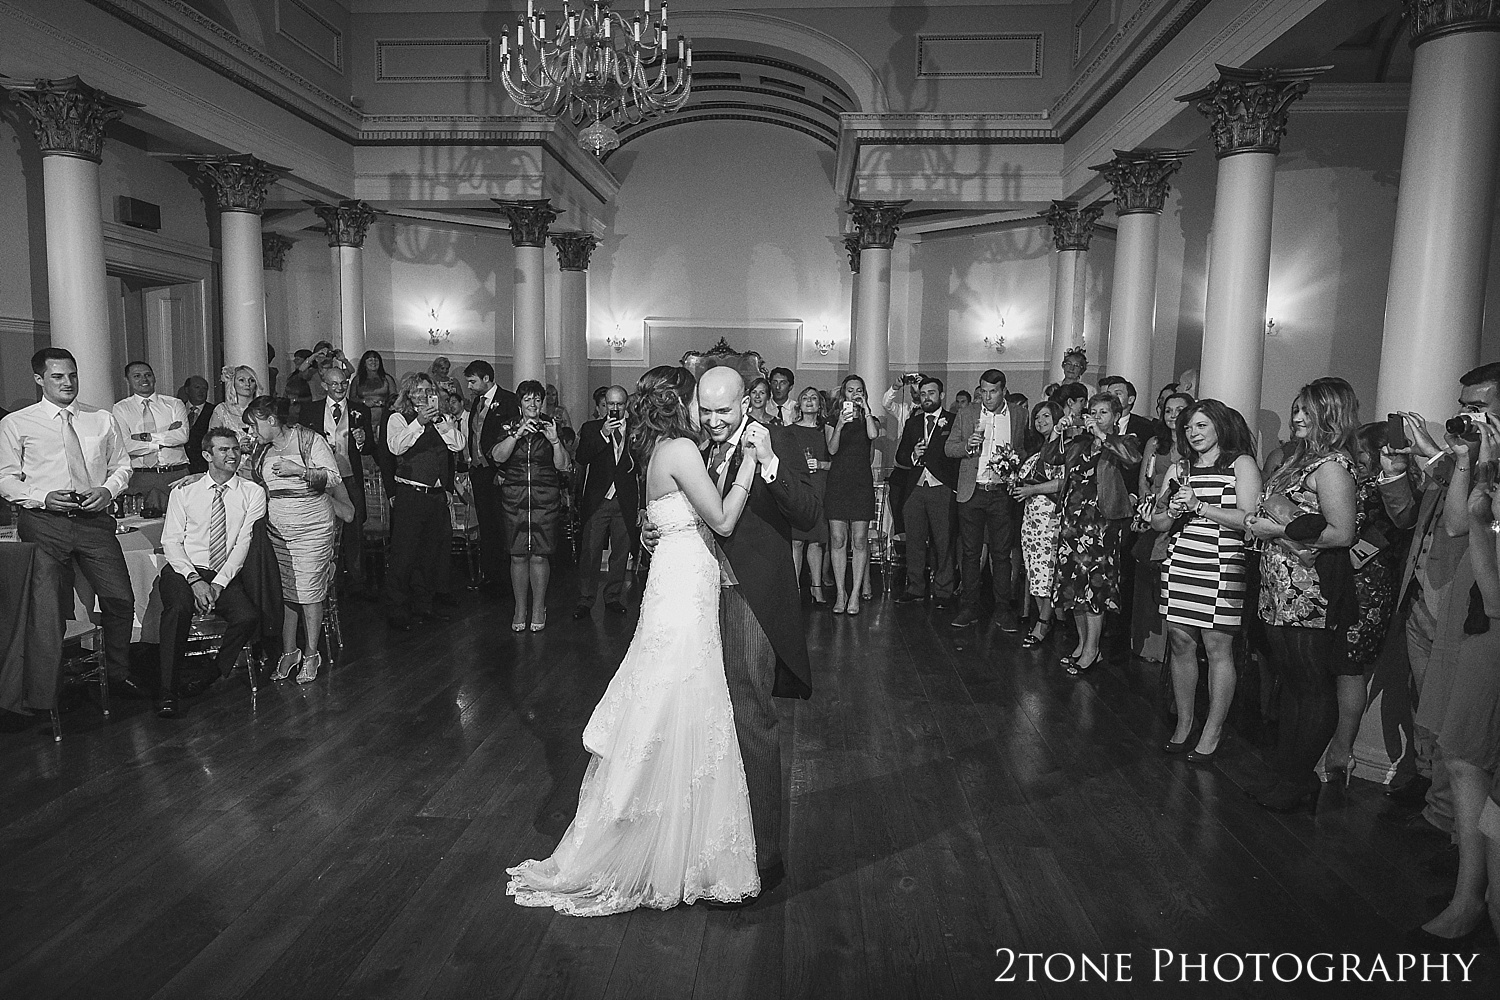 Day turns to evening and our couple take to the dance floor for their first dance as man and wife.